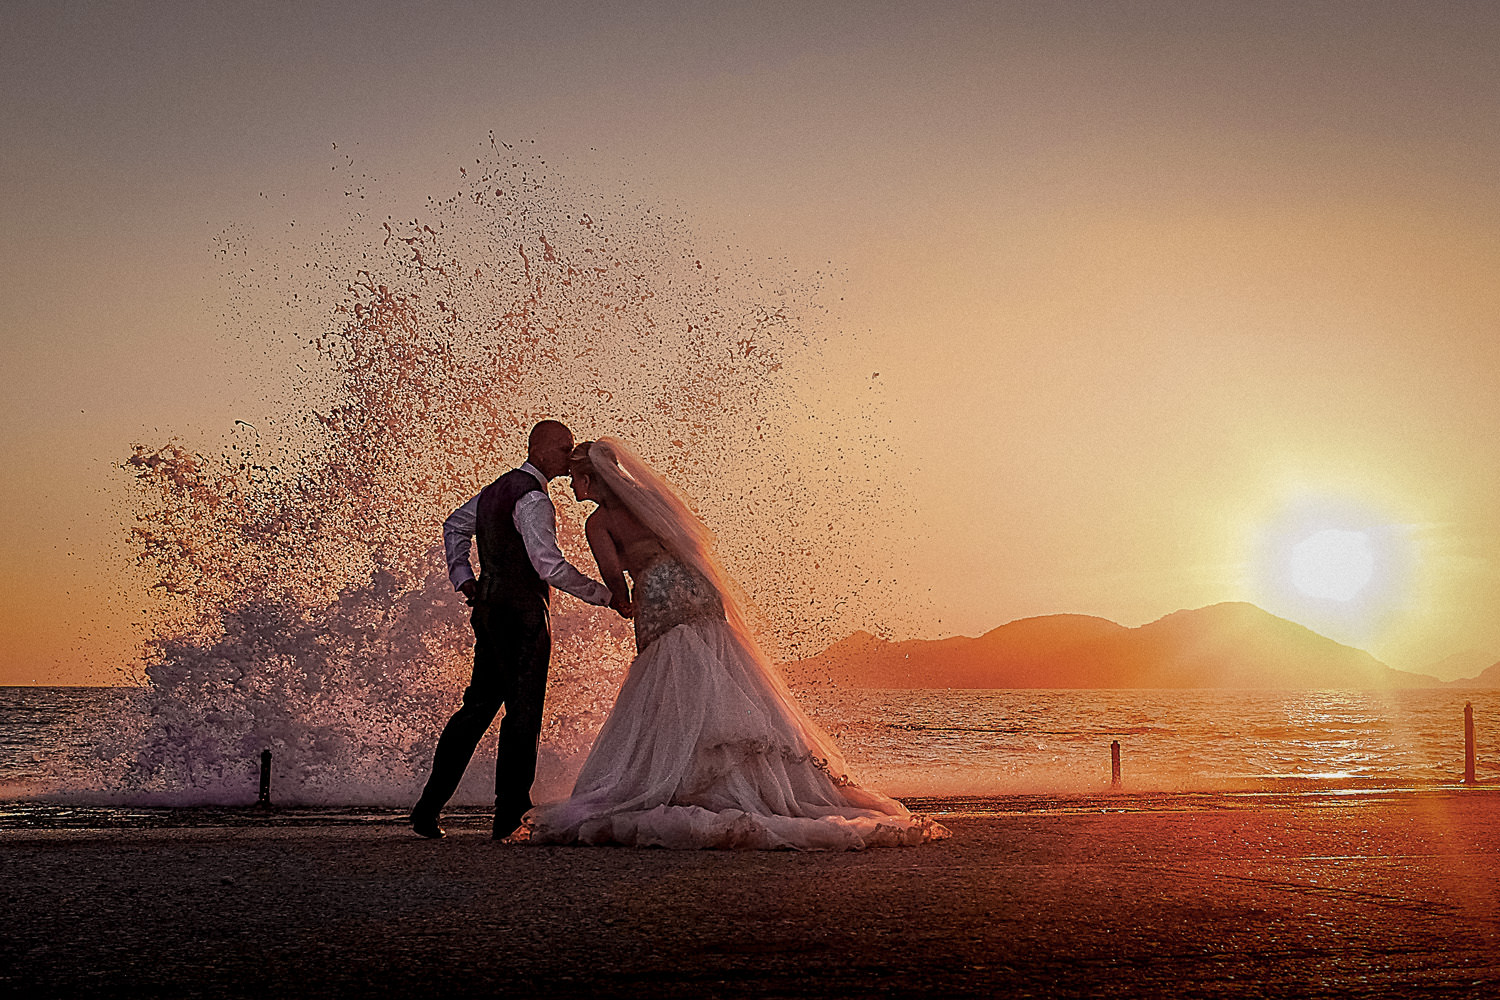 Big wave crashing over bride and groom at sunset wedding photography at Liberty Hotels Lykia